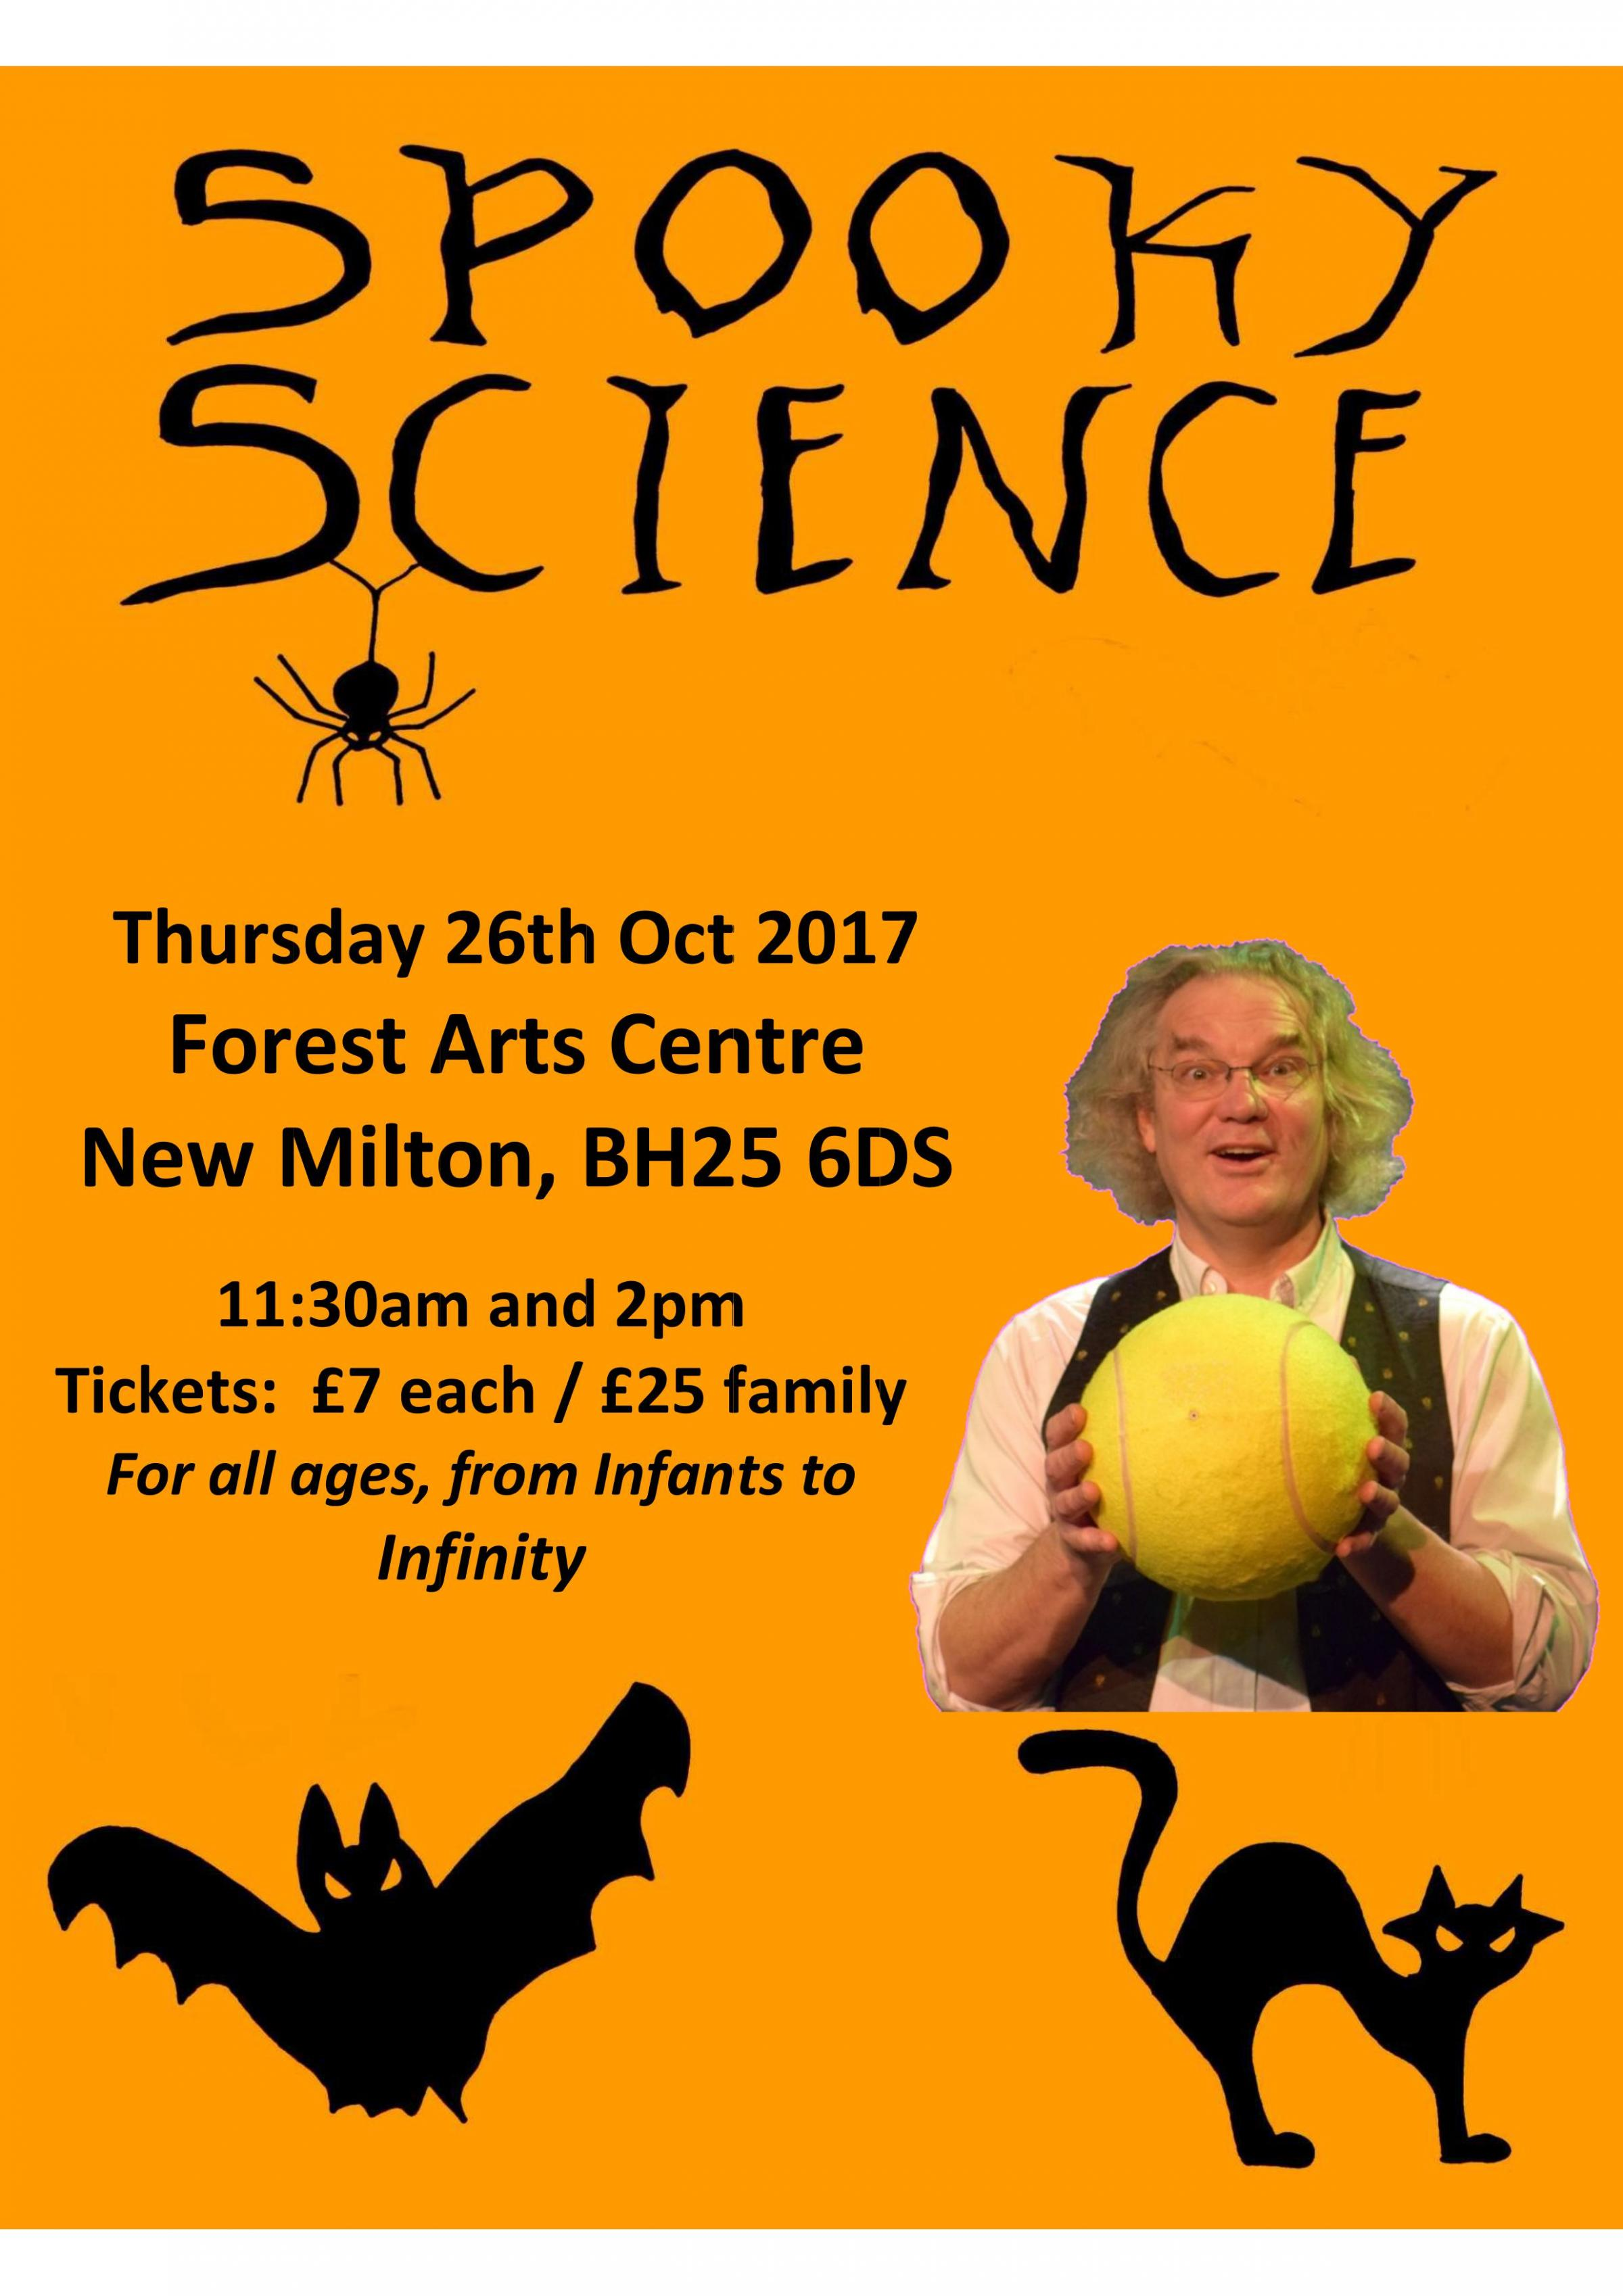 Spooky Science with Ian B Dunne